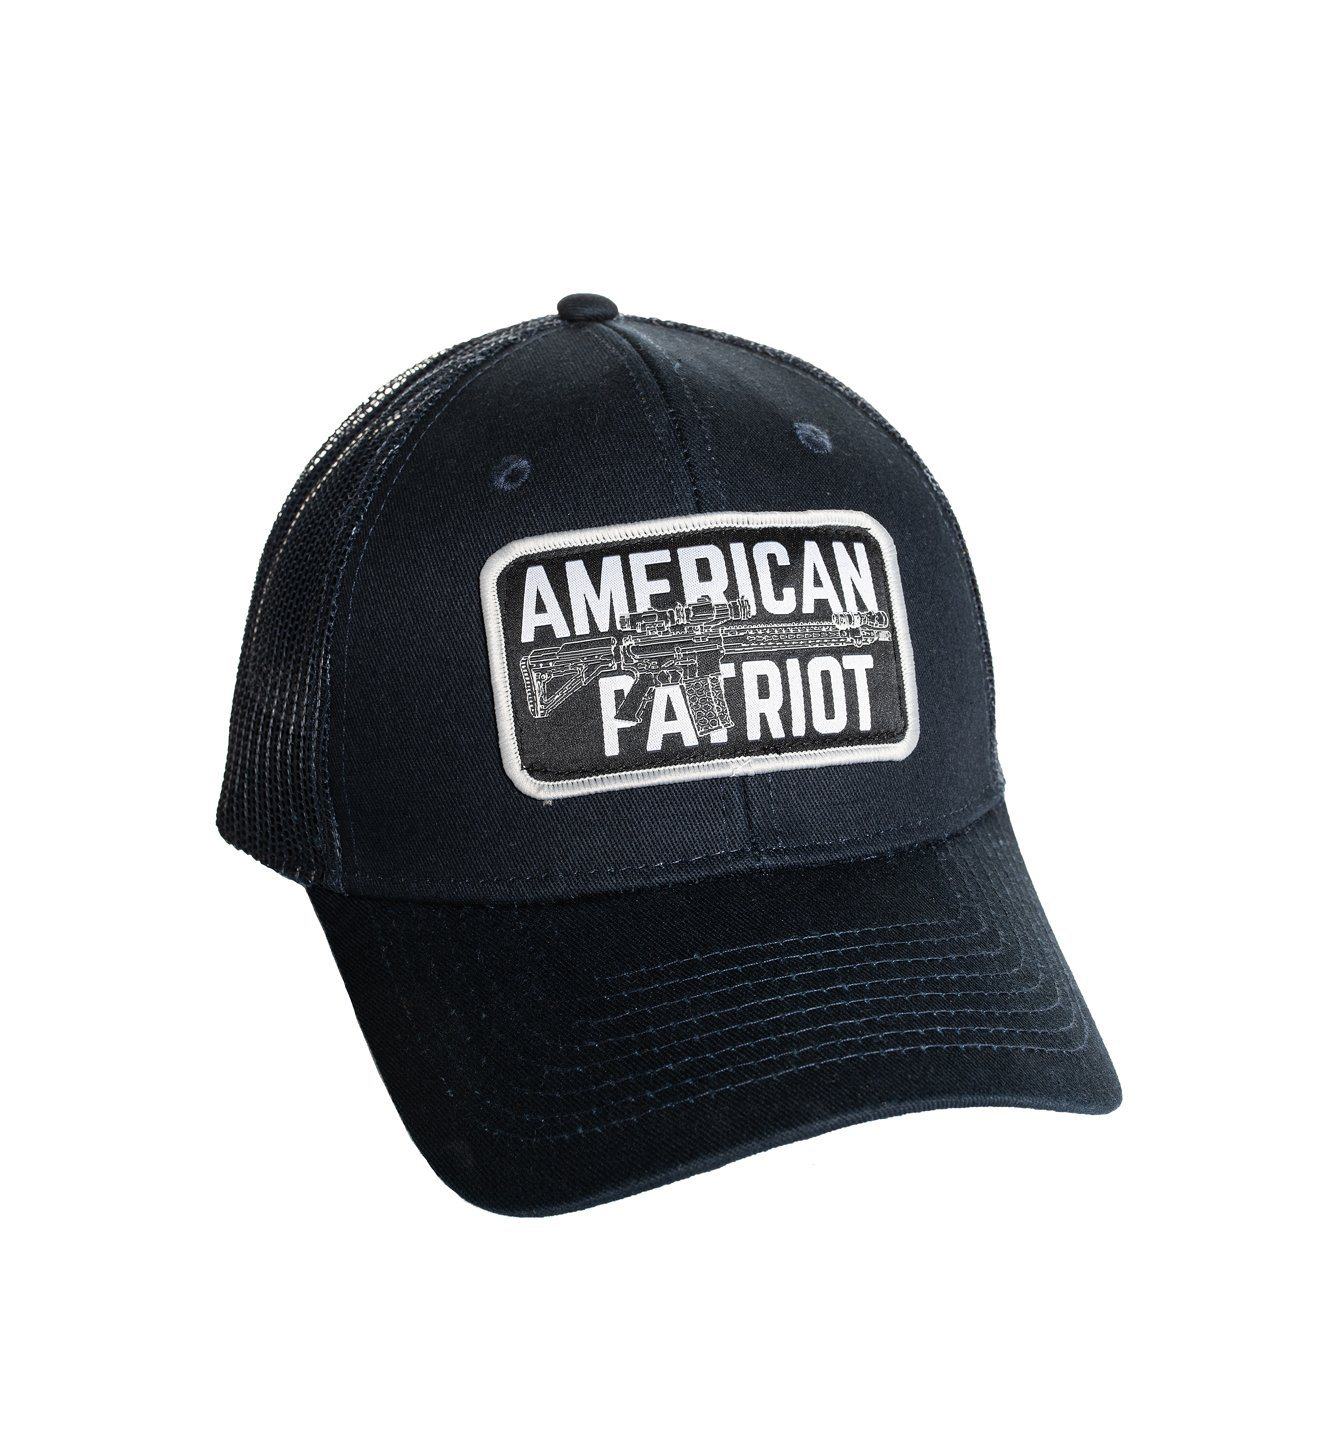 American Patriot Hat Hat Howitzer Clothing